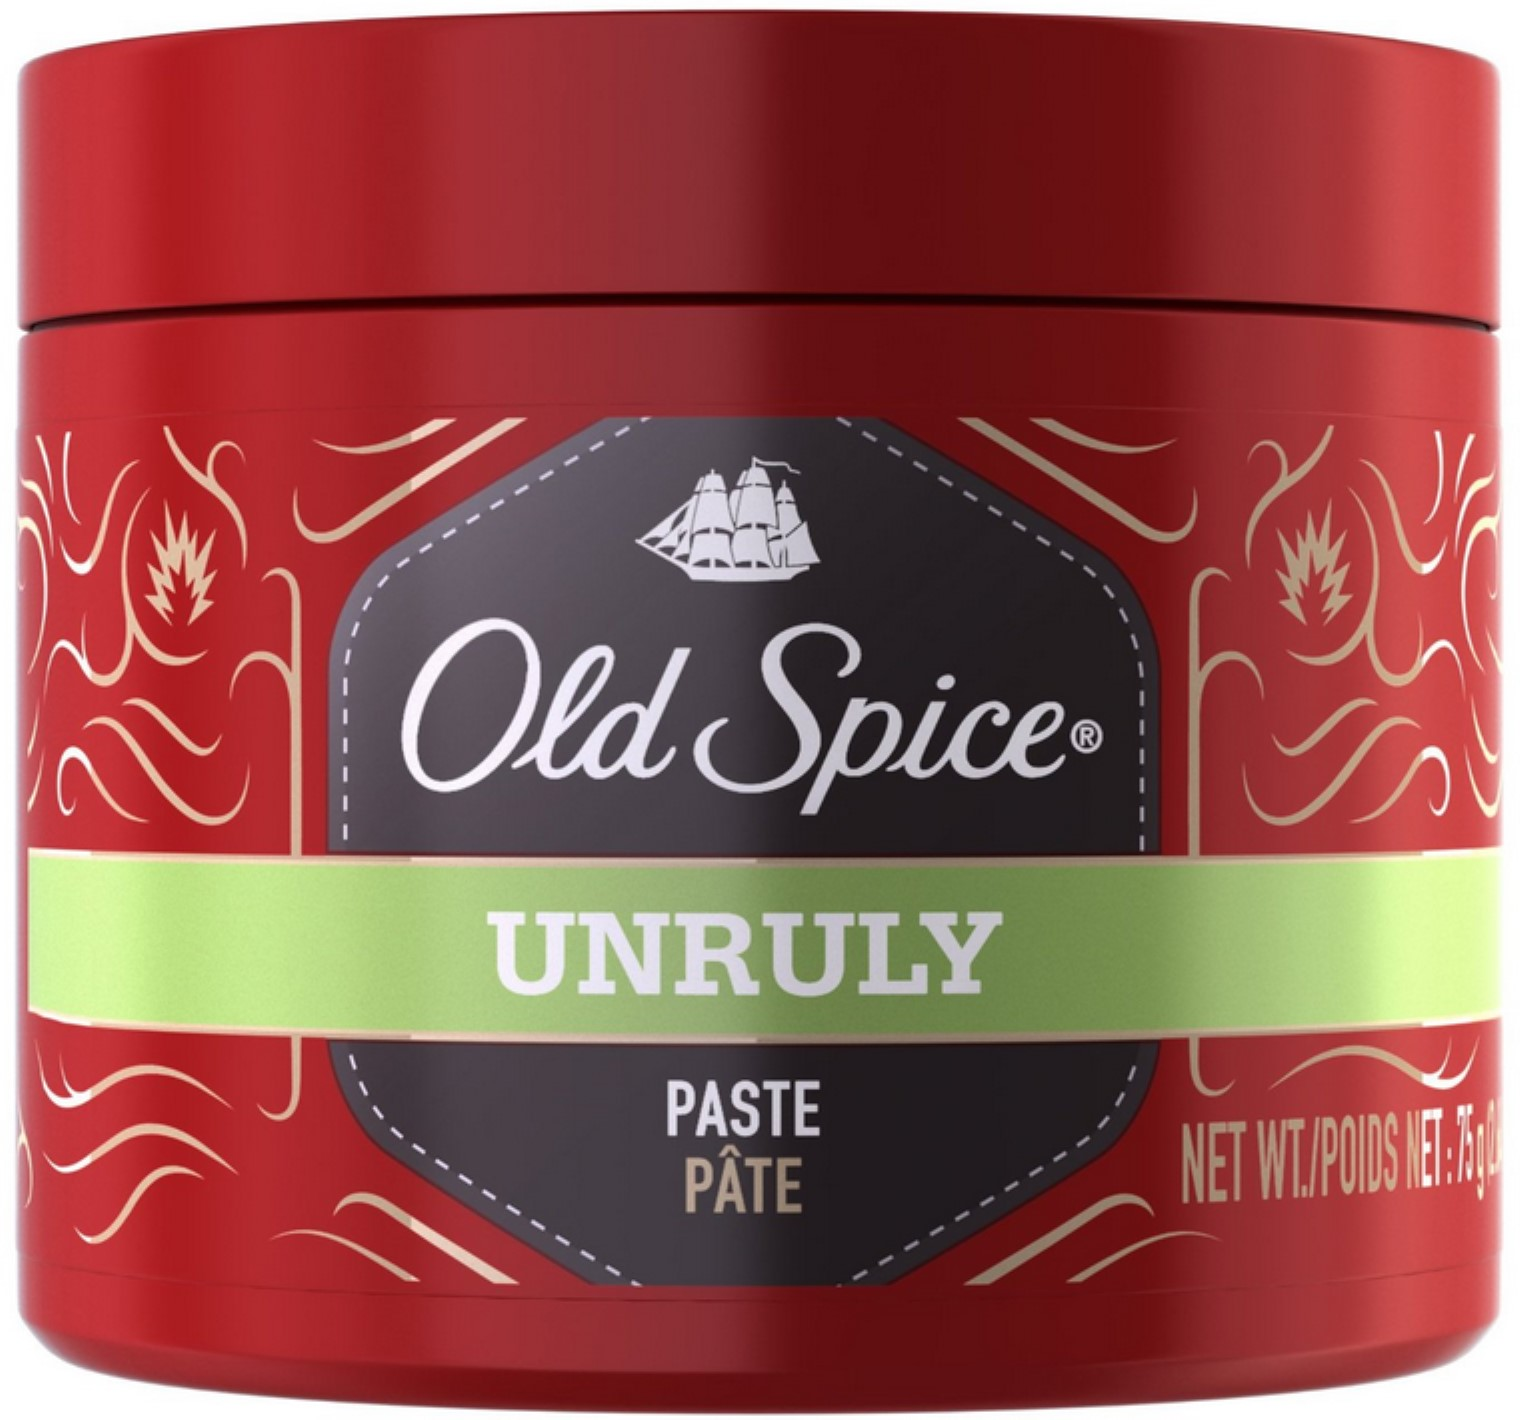 Old Spice Styler Unruly Paste 1 ea (Pack of 3)